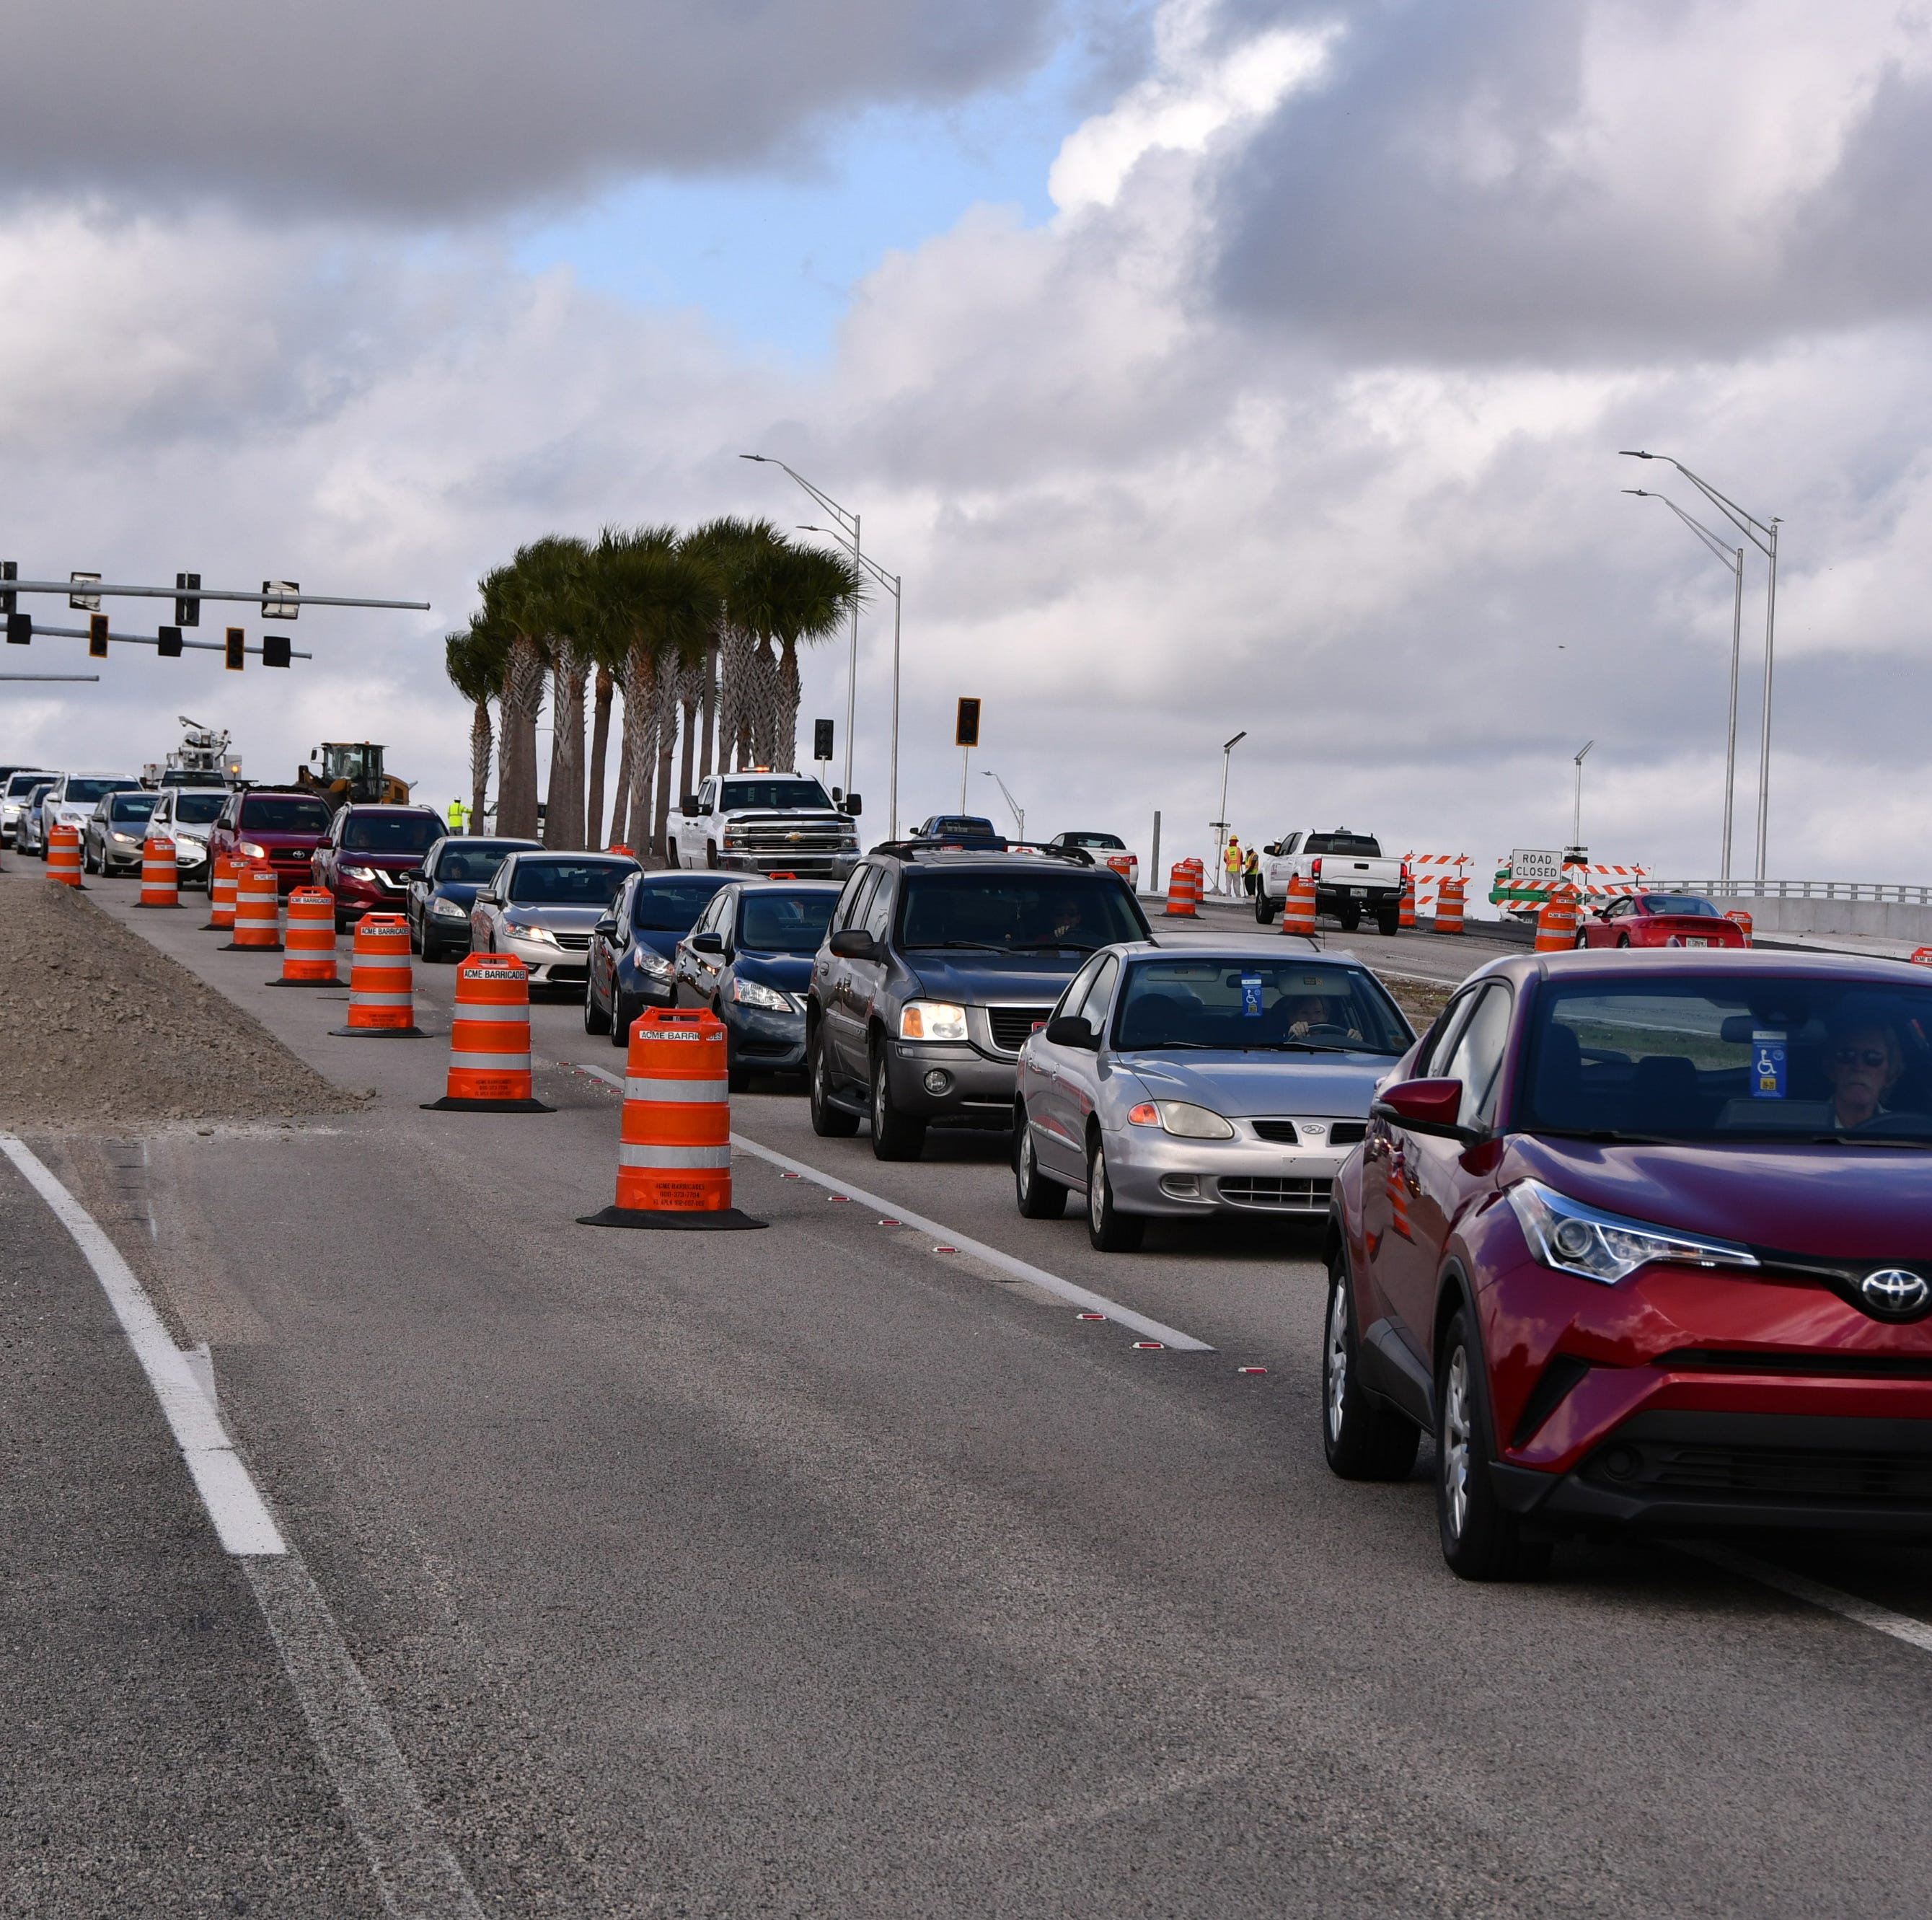 Viera diverging diamond triggers traffic tie-ups; FDOT to open all lanes within two weeks